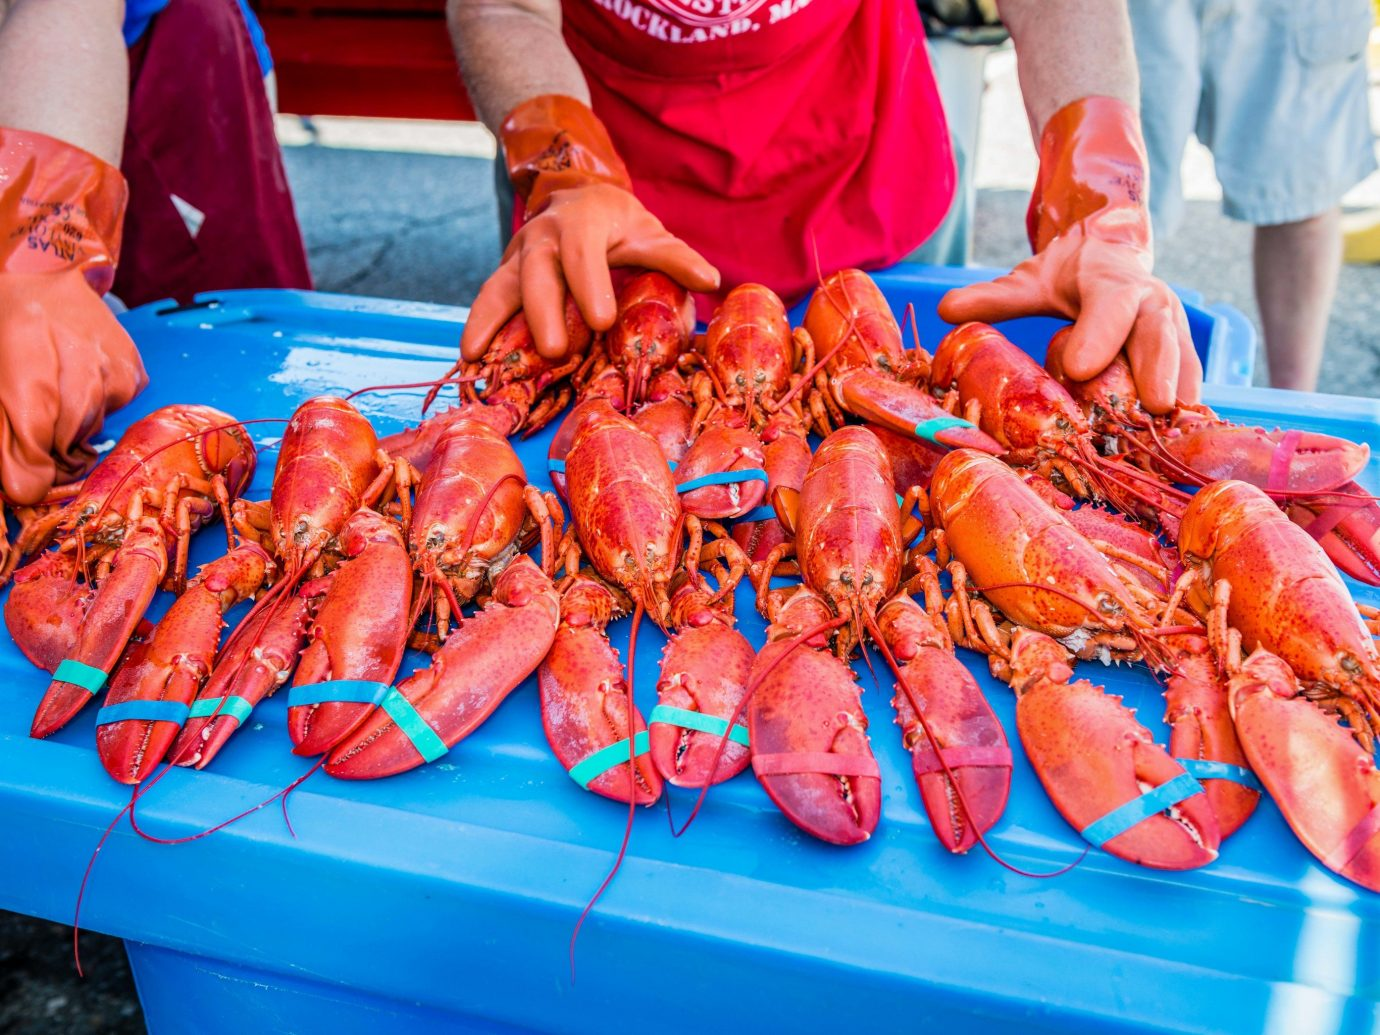 Maine Lobster Festival Offbeat arthropod invertebrate animal person carrot Seafood food blue american lobster lobster decapoda crustacean animal source foods seafood boil crab king crab homarus dungeness crab crab boil new england clam bake homarus gammarus crab meat crayfish spiny lobster